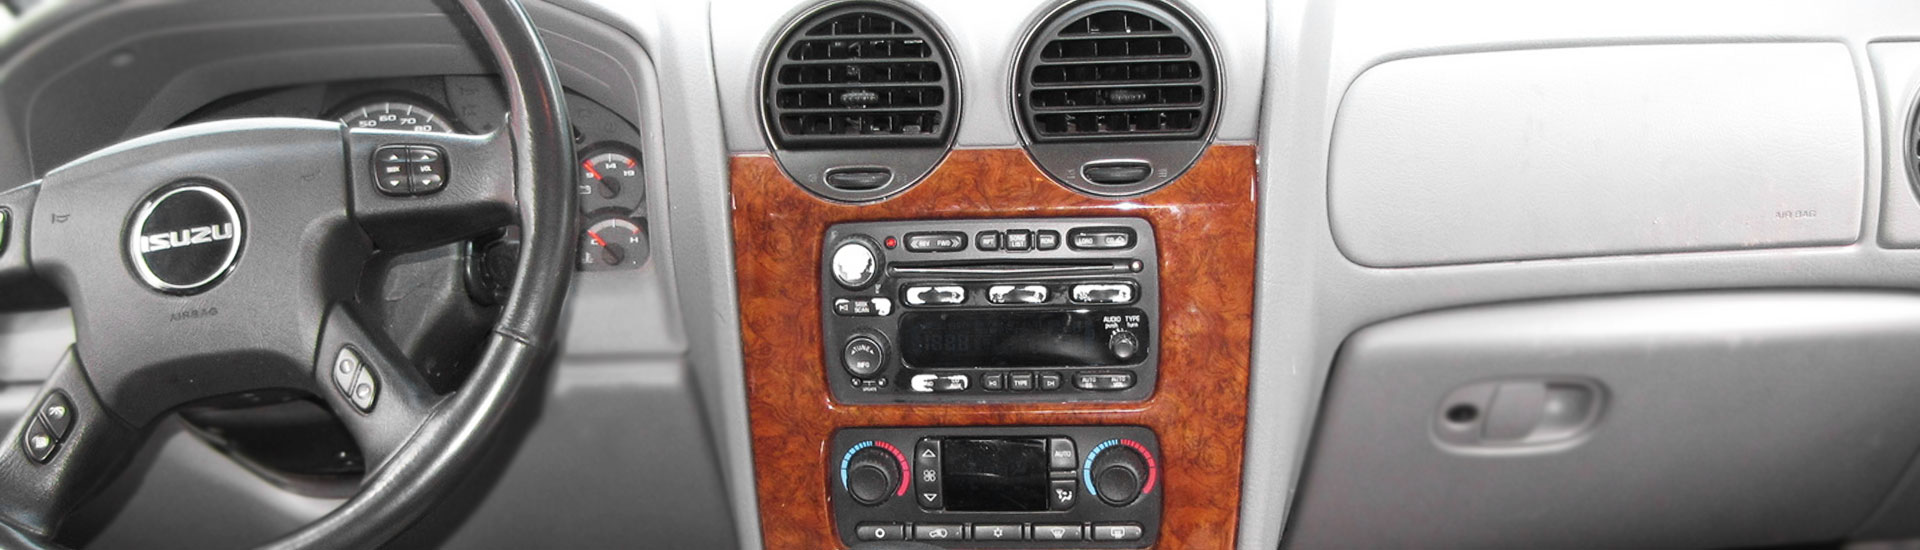 1992 Isuzu Impulse Custom Dash Kits